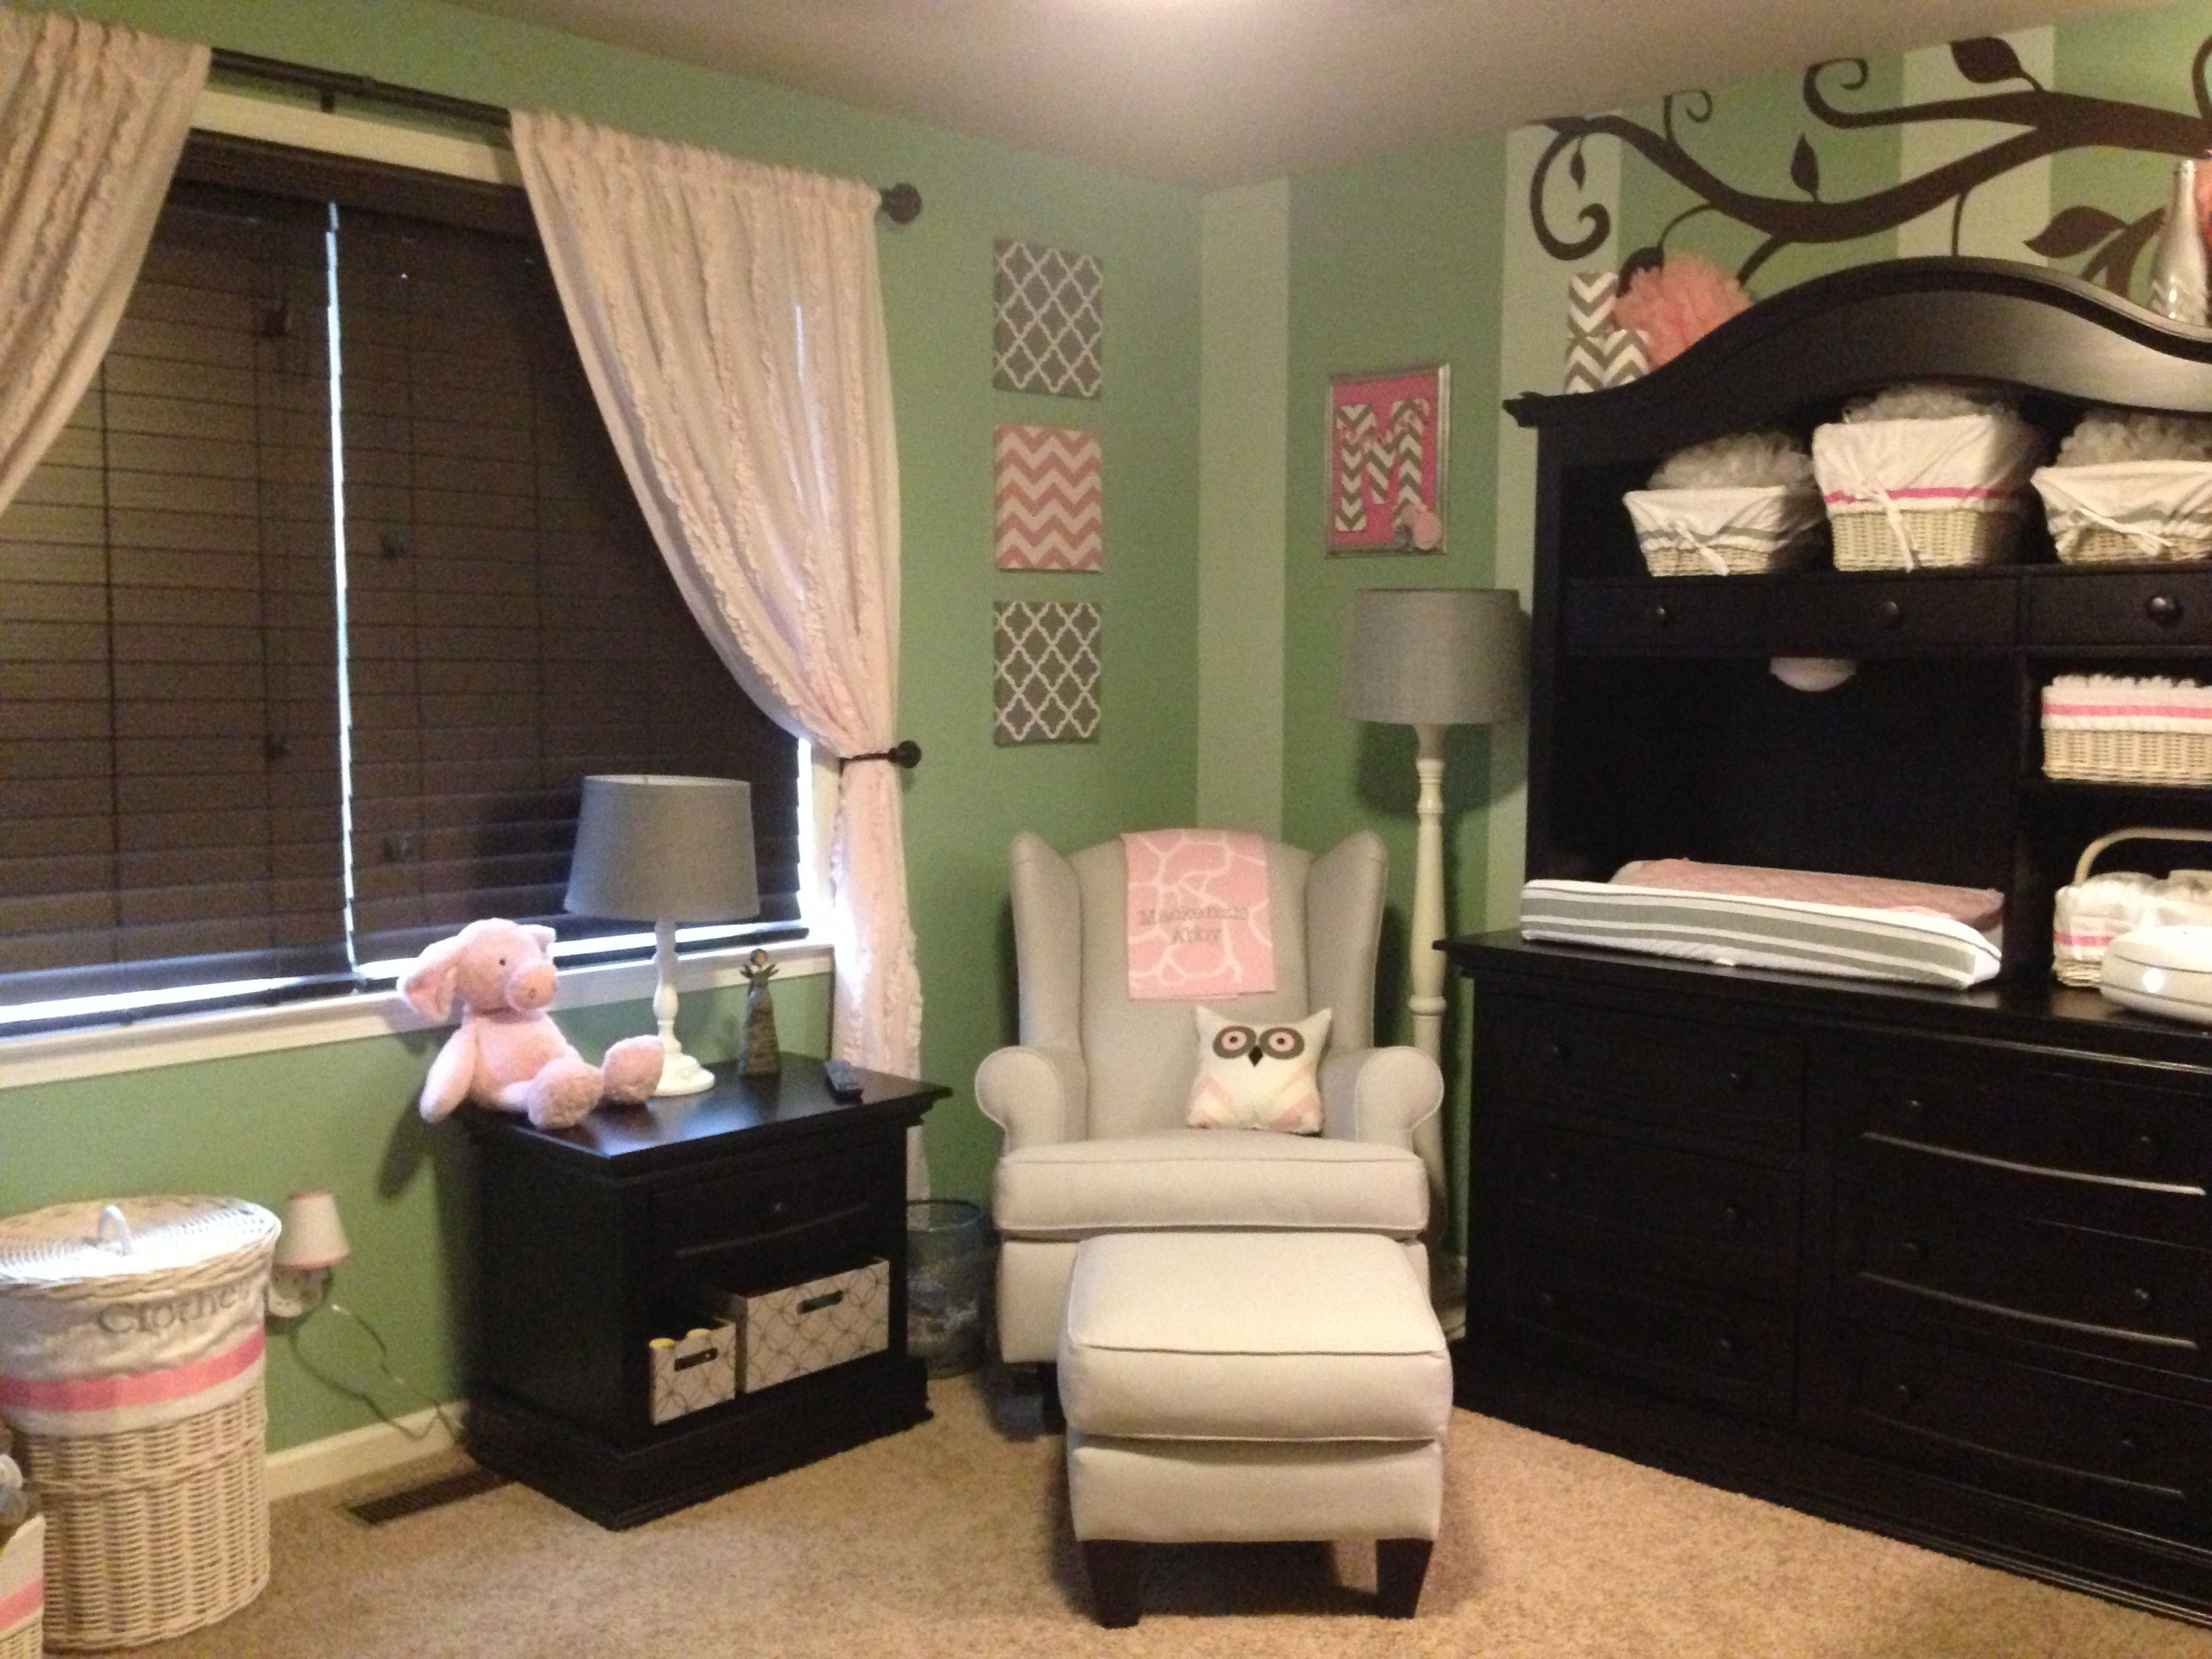 Baby Girl Room - Green Walls with Pink & Gray accents | Girl Themed ...